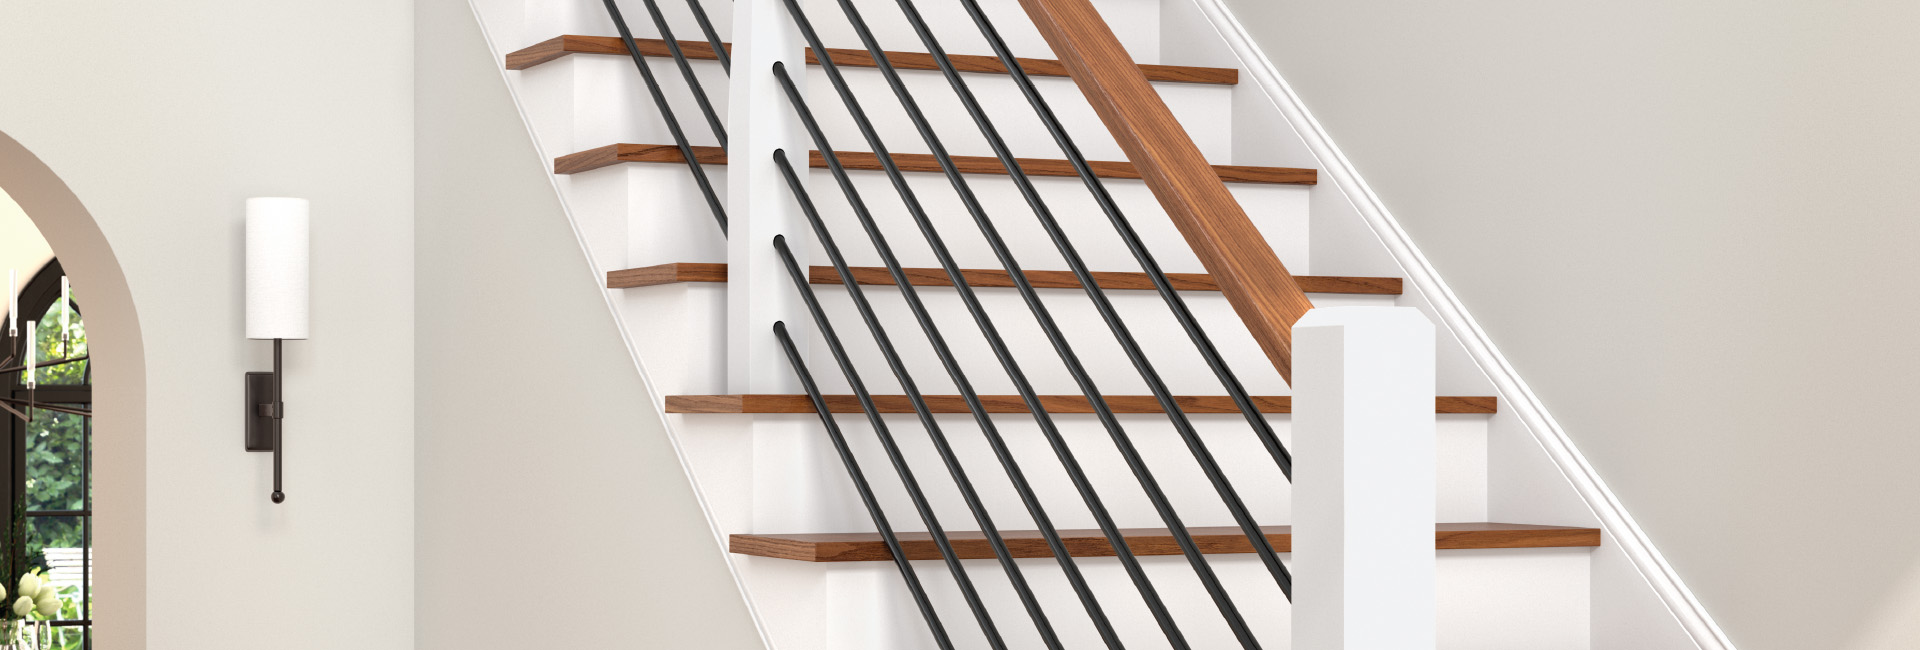 stair newels and balusters